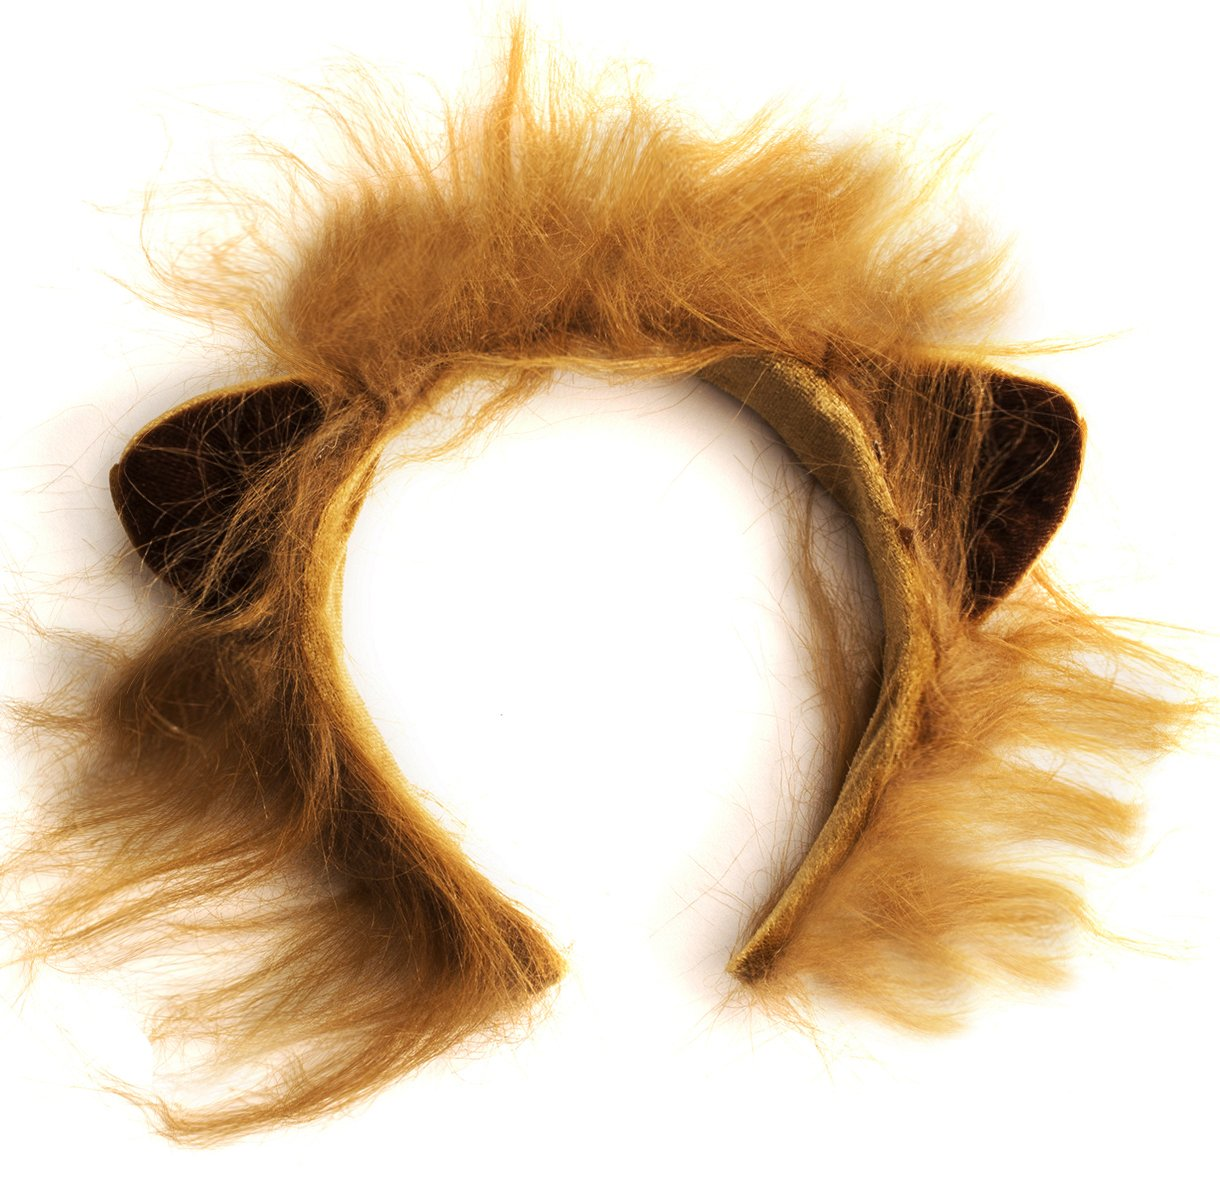 Funny Party Hats Lion Ears and Tail Set - Lion Costume - Ears Headband - Animal Headbands with Ears by Funny Party Hats (Image #2)